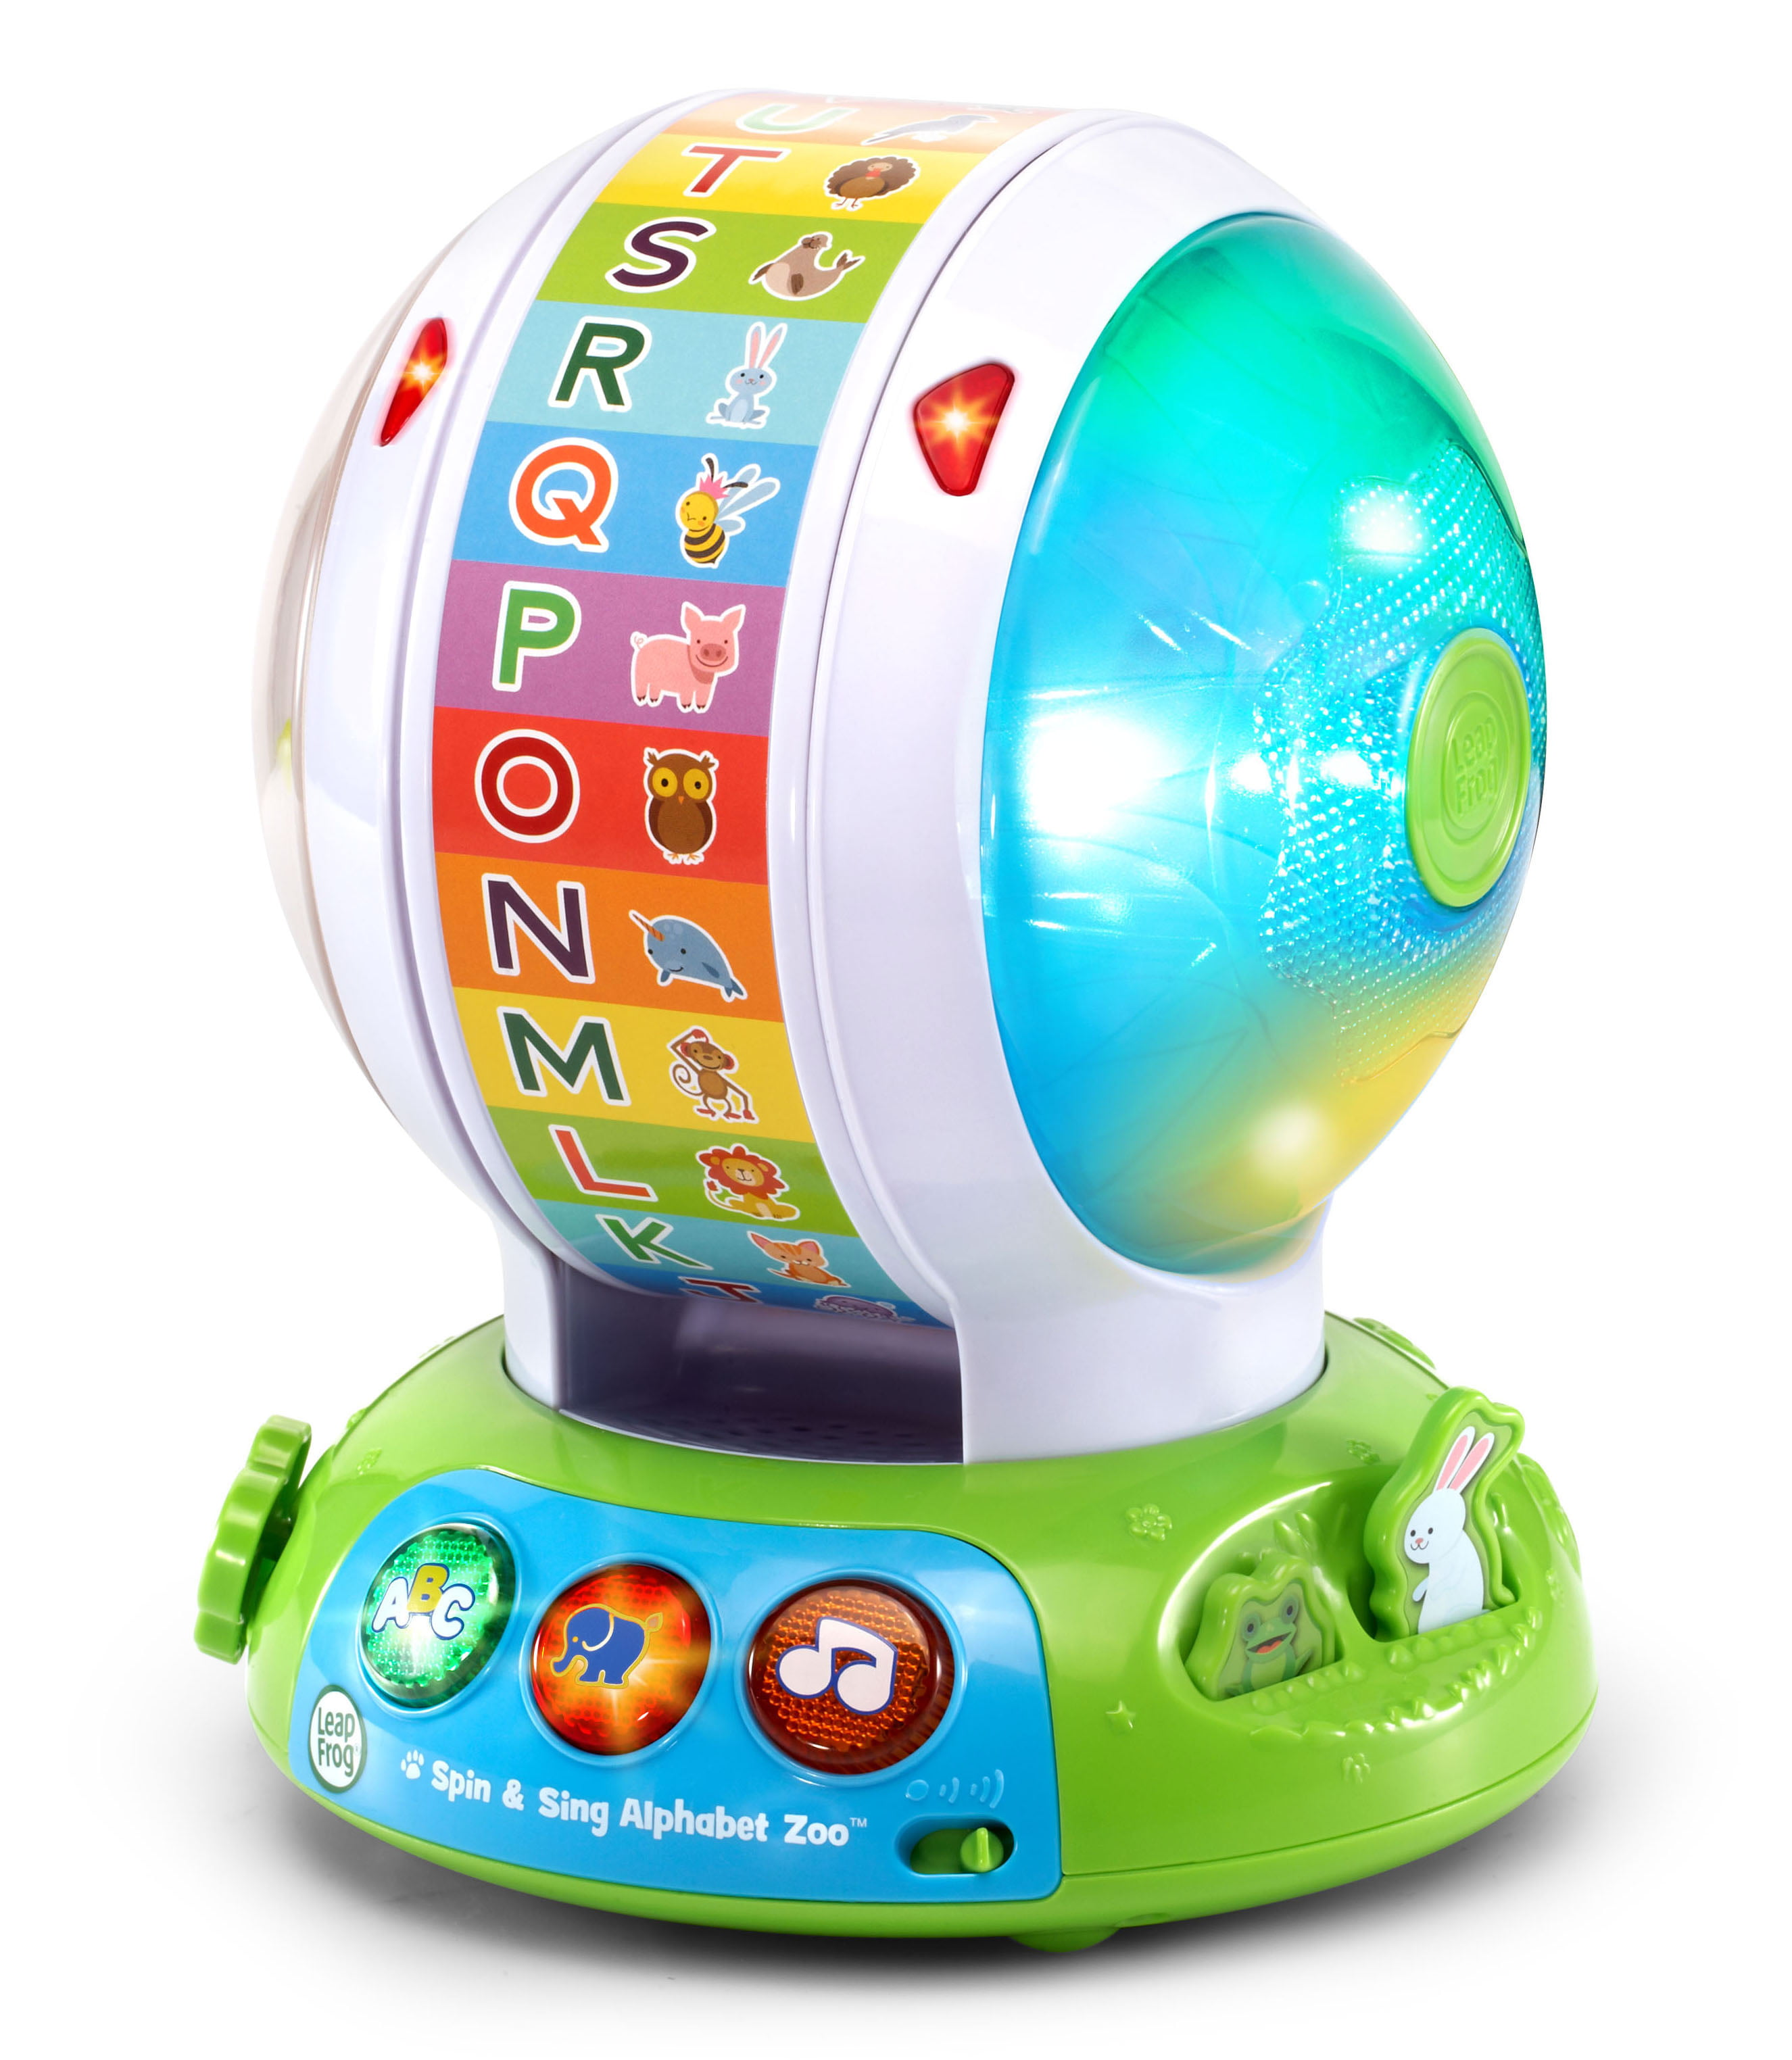 LeapFrog Spin and Sing Alphabet Zoo, Interactive Teaching Toy for Baby -  Walmart.com - Walmart.com